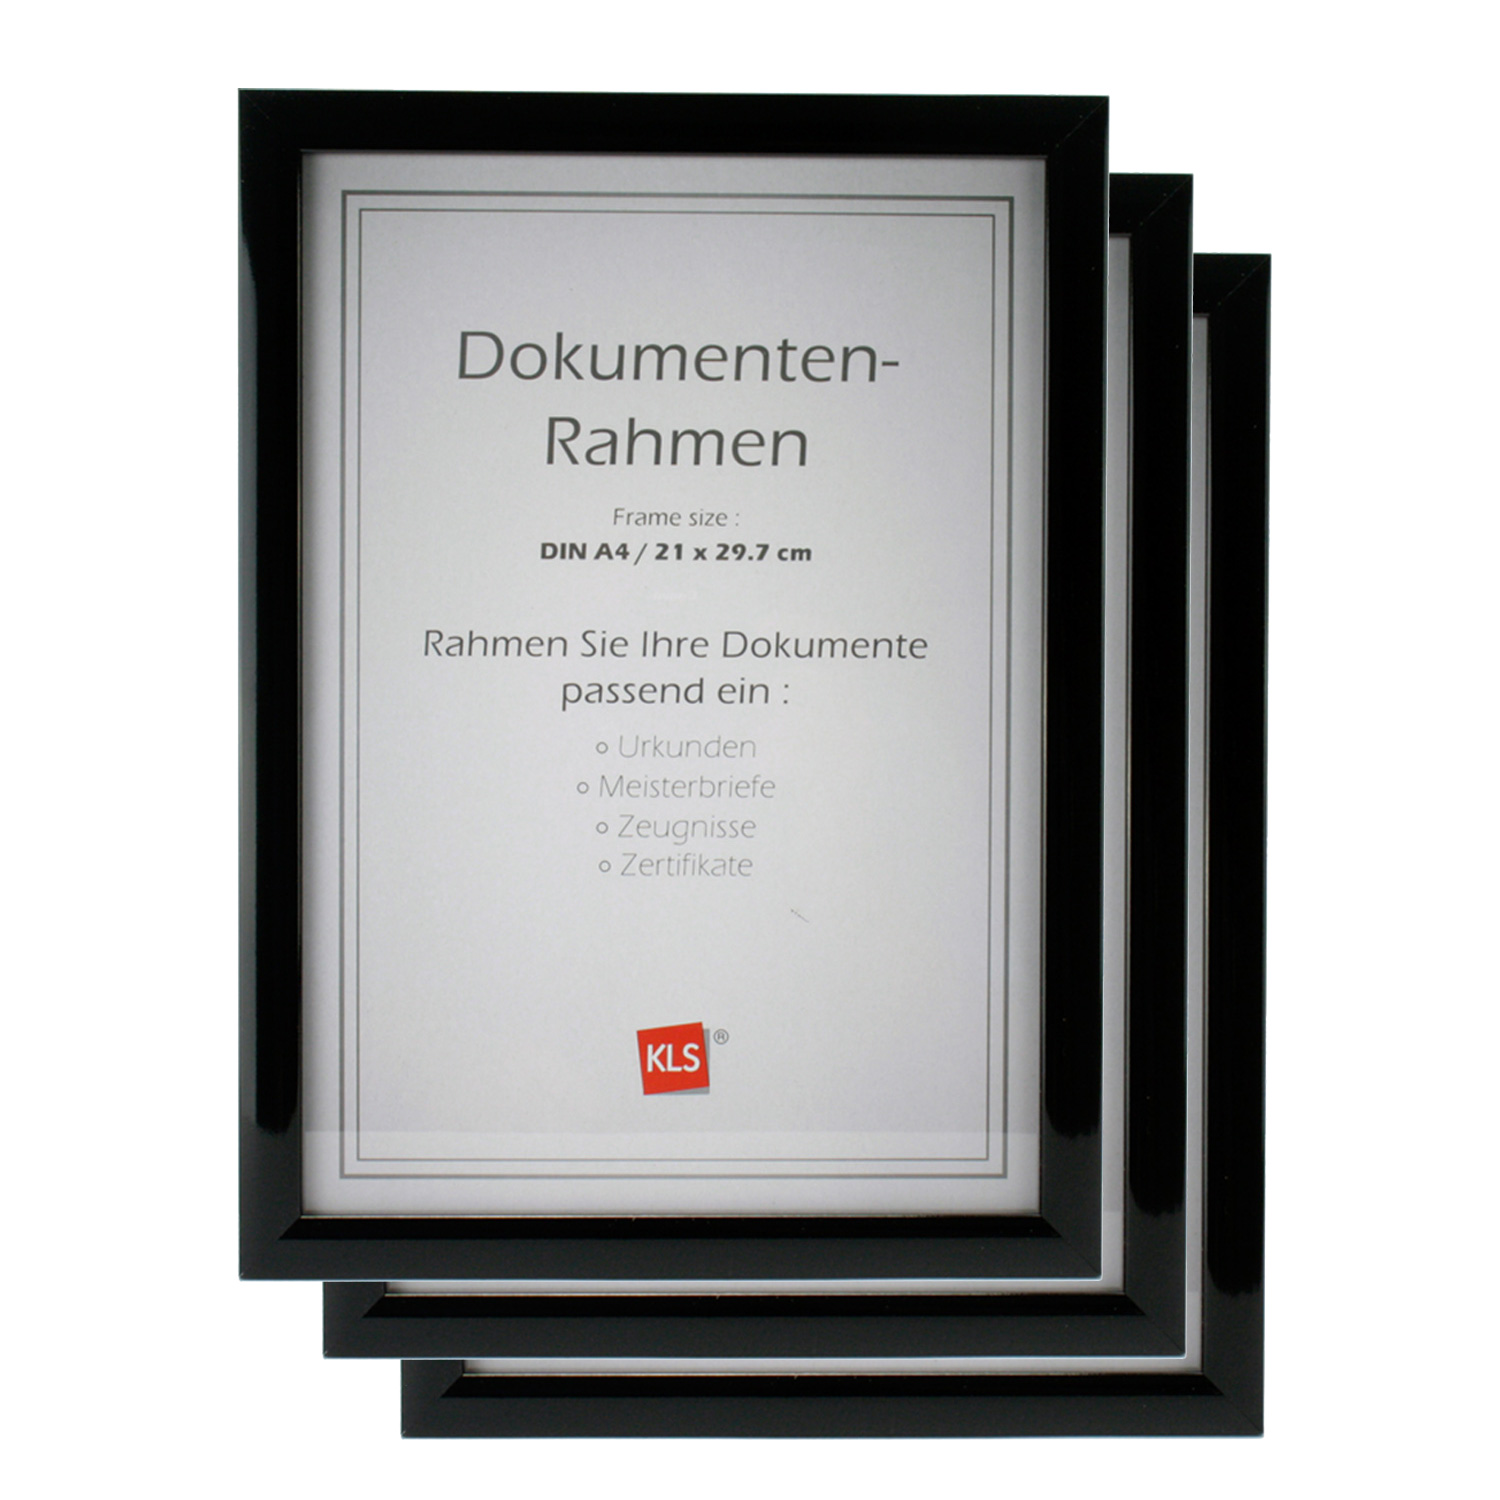 3x bilderrahmen urkunde dokumentenrahmen fotorahmen din a4. Black Bedroom Furniture Sets. Home Design Ideas